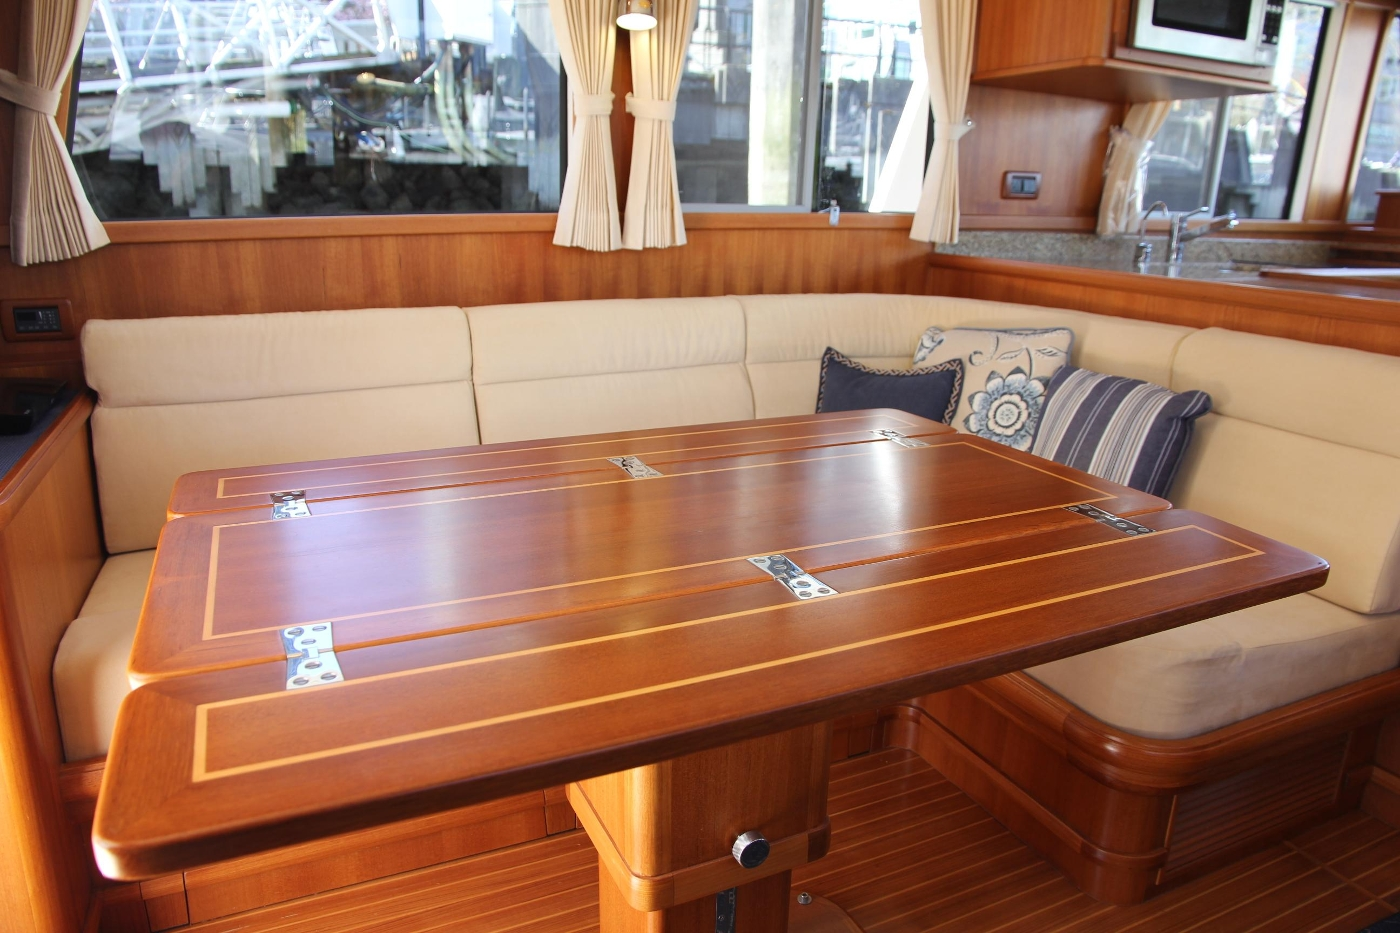 2009 Grand Banks 47 Europa, Hi-Low Dinning Table